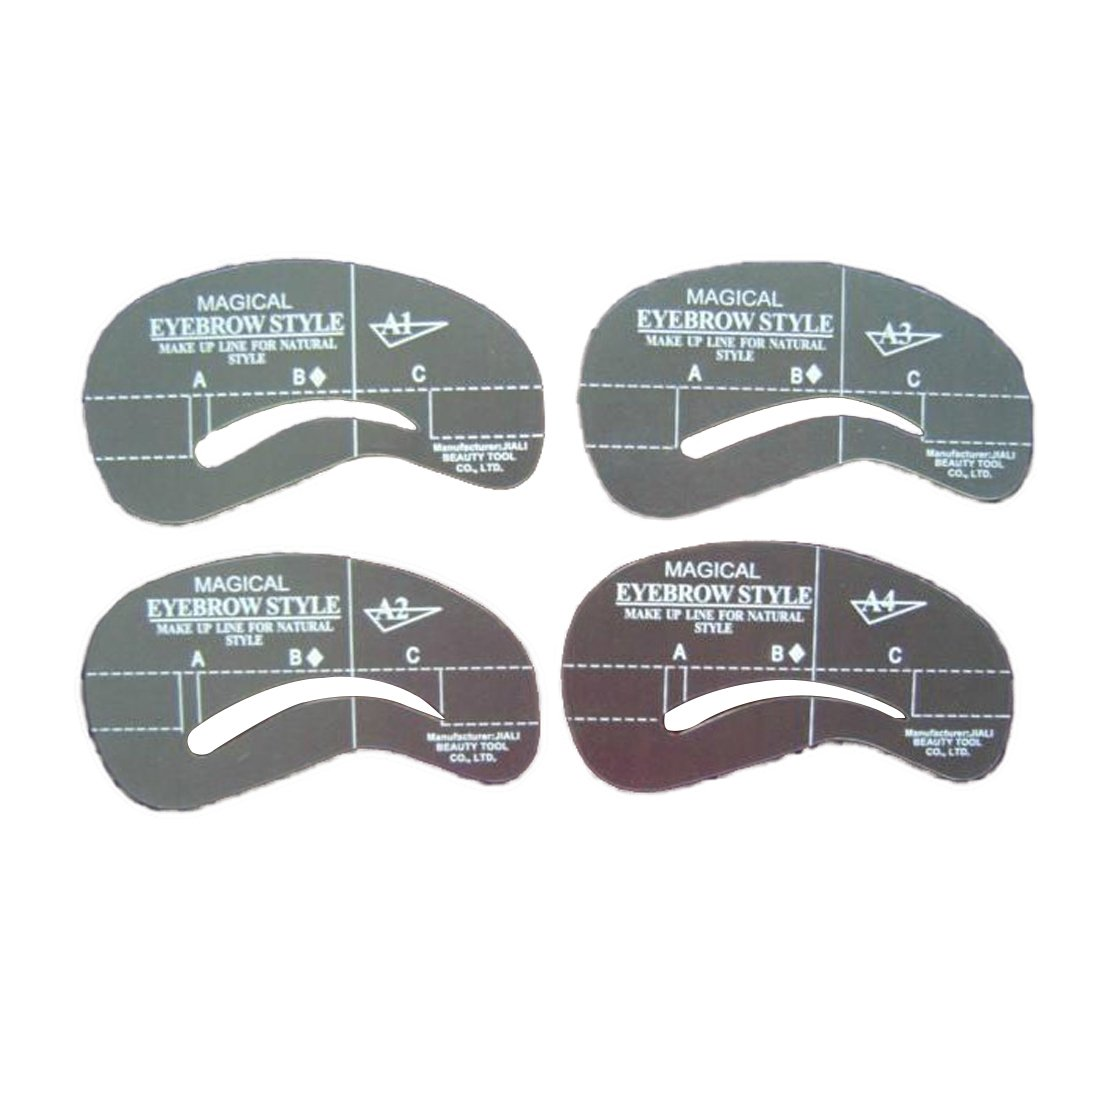 4pcs/set Styles Grooming Eyebrow Stencil Kit Makeup Tools DIY Beauty Stencil CY-Buity